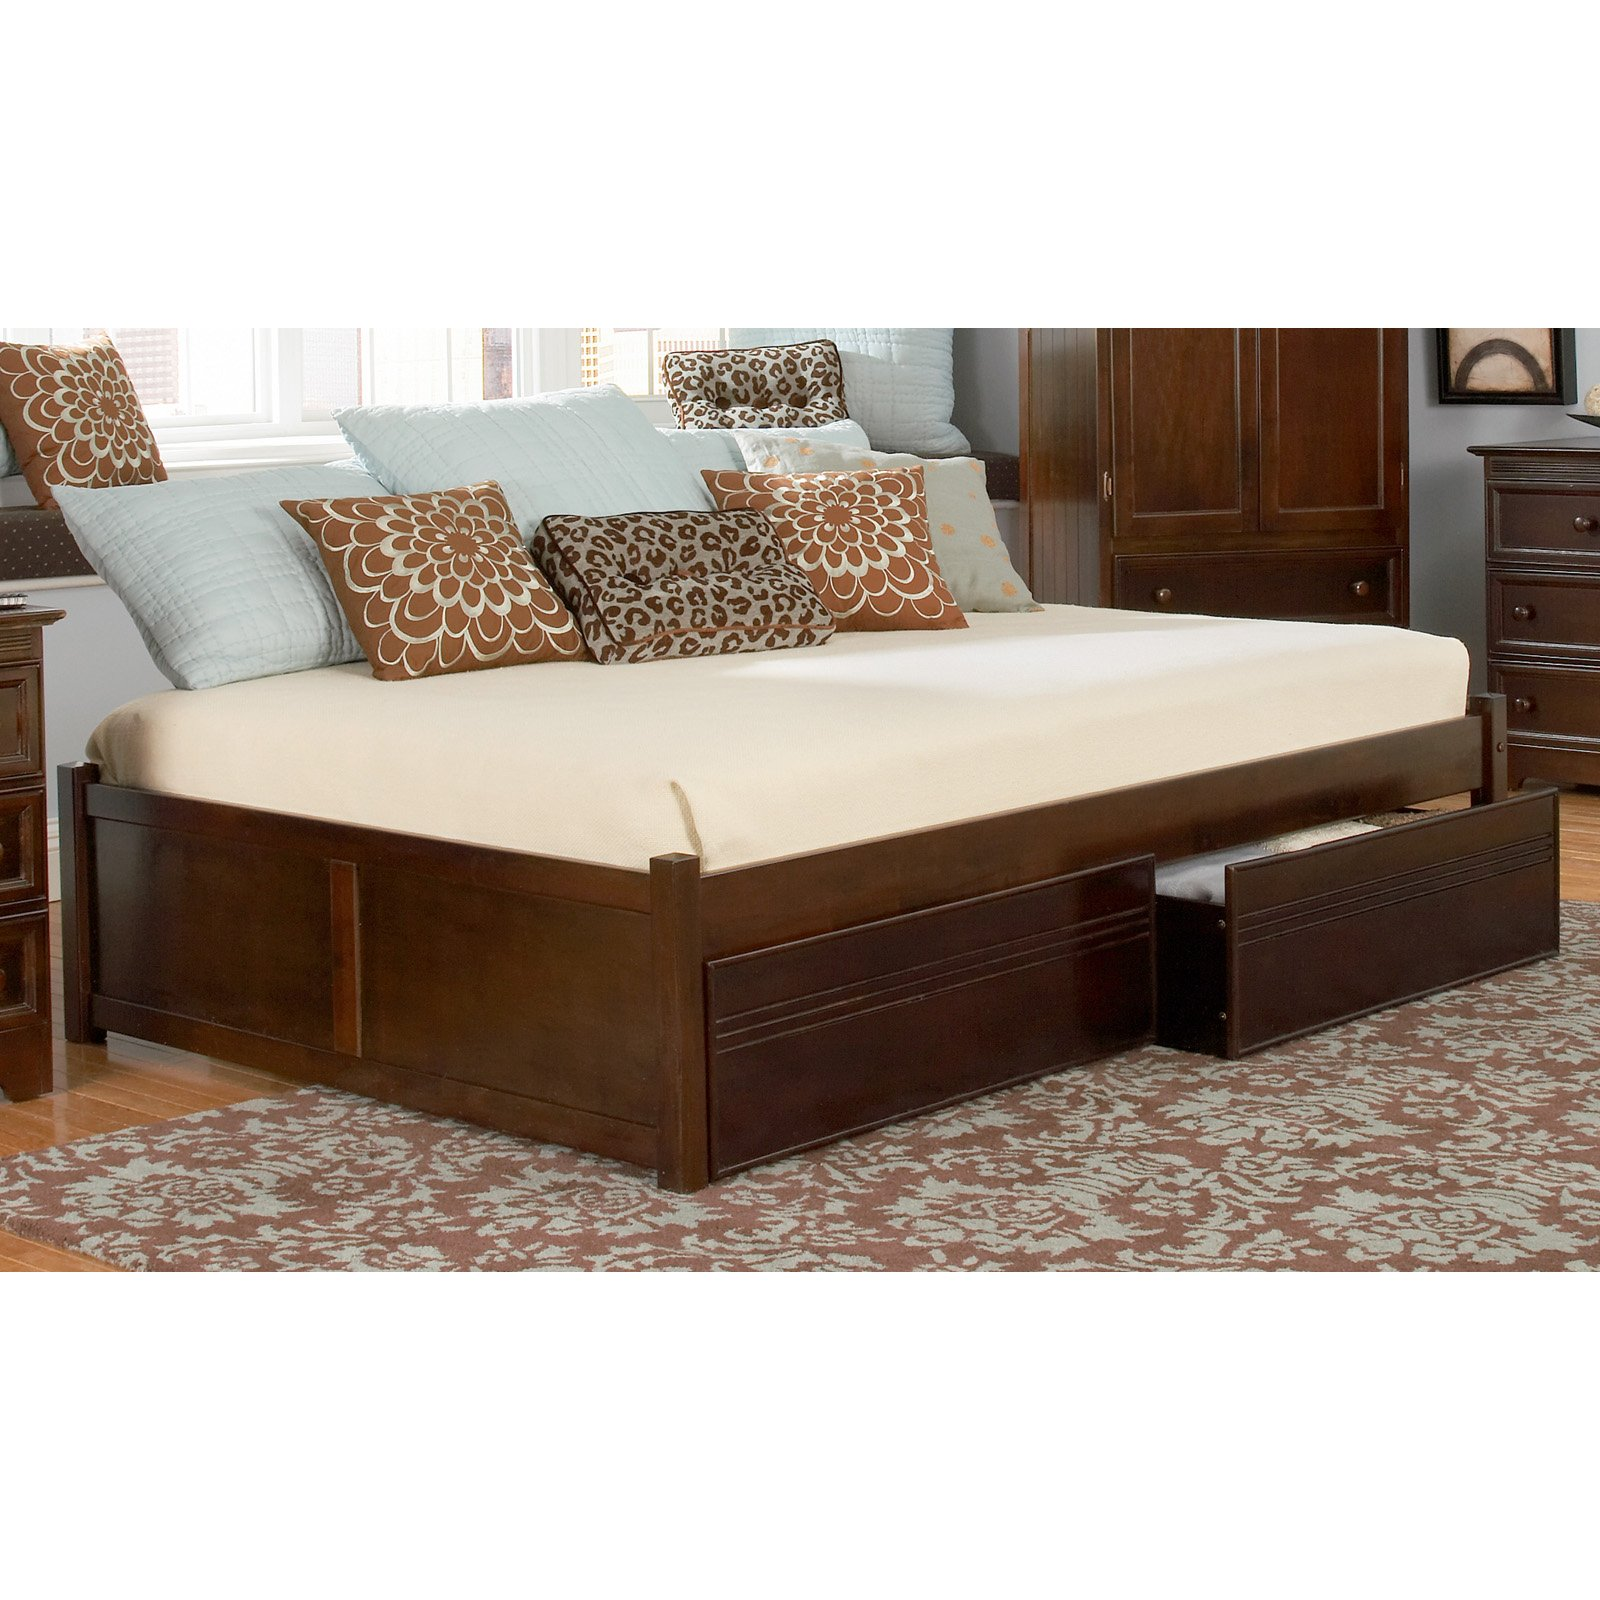 Full Daybed | Daybed Full Size Frame | Daybed Full Size with Trundle